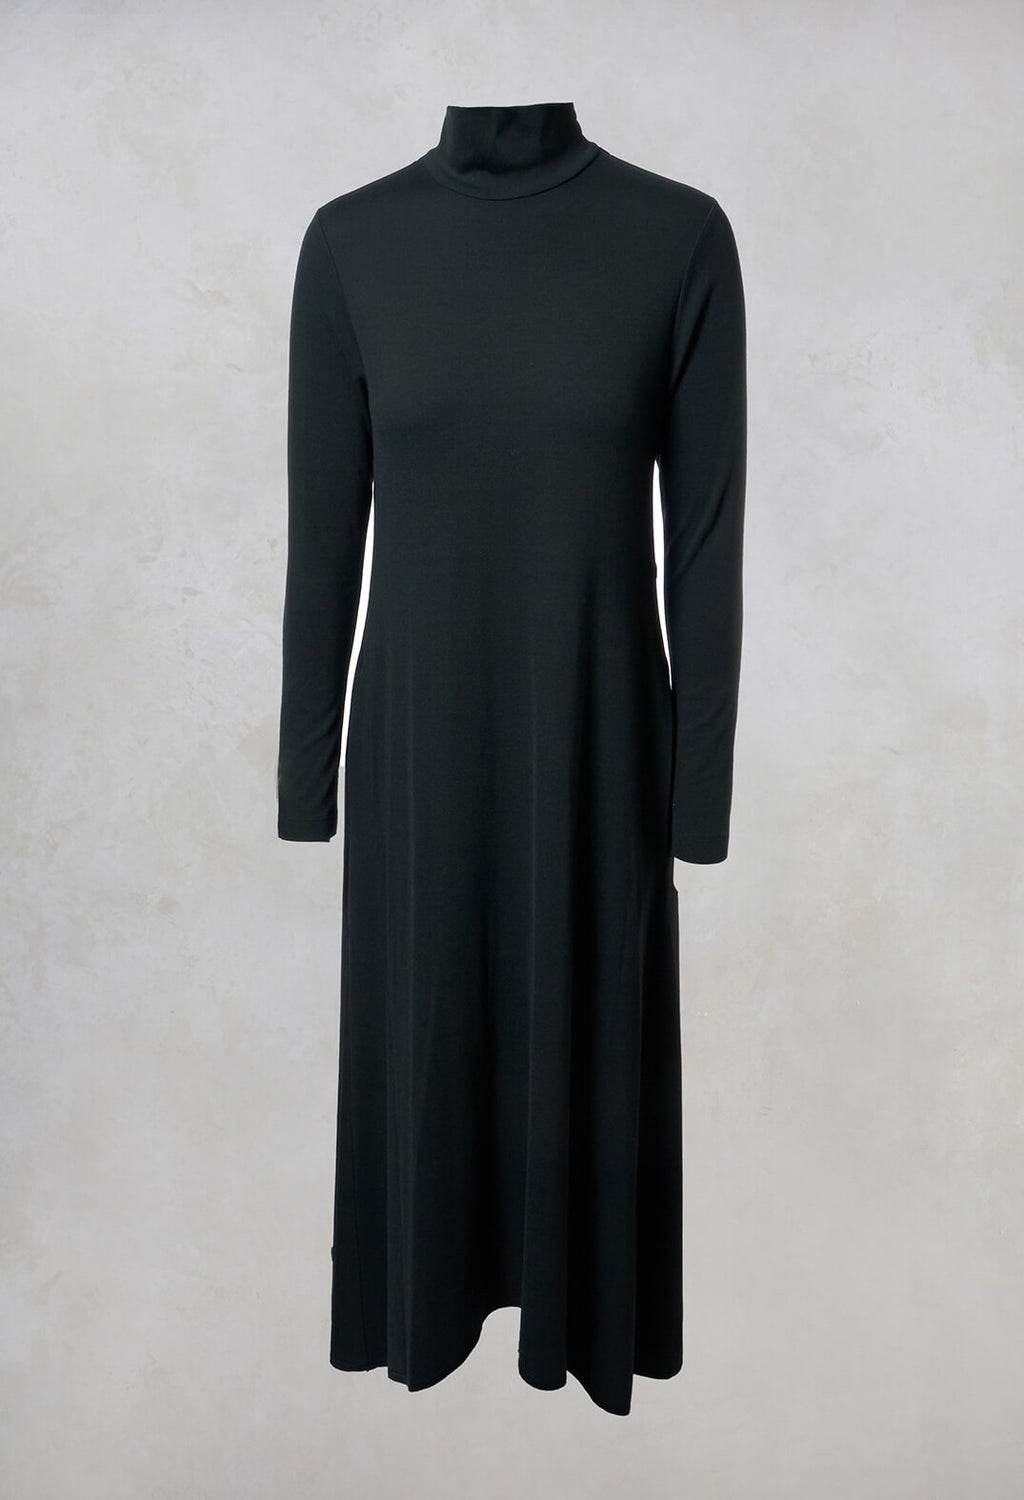 High Neck Maxi Dress in Dark Green